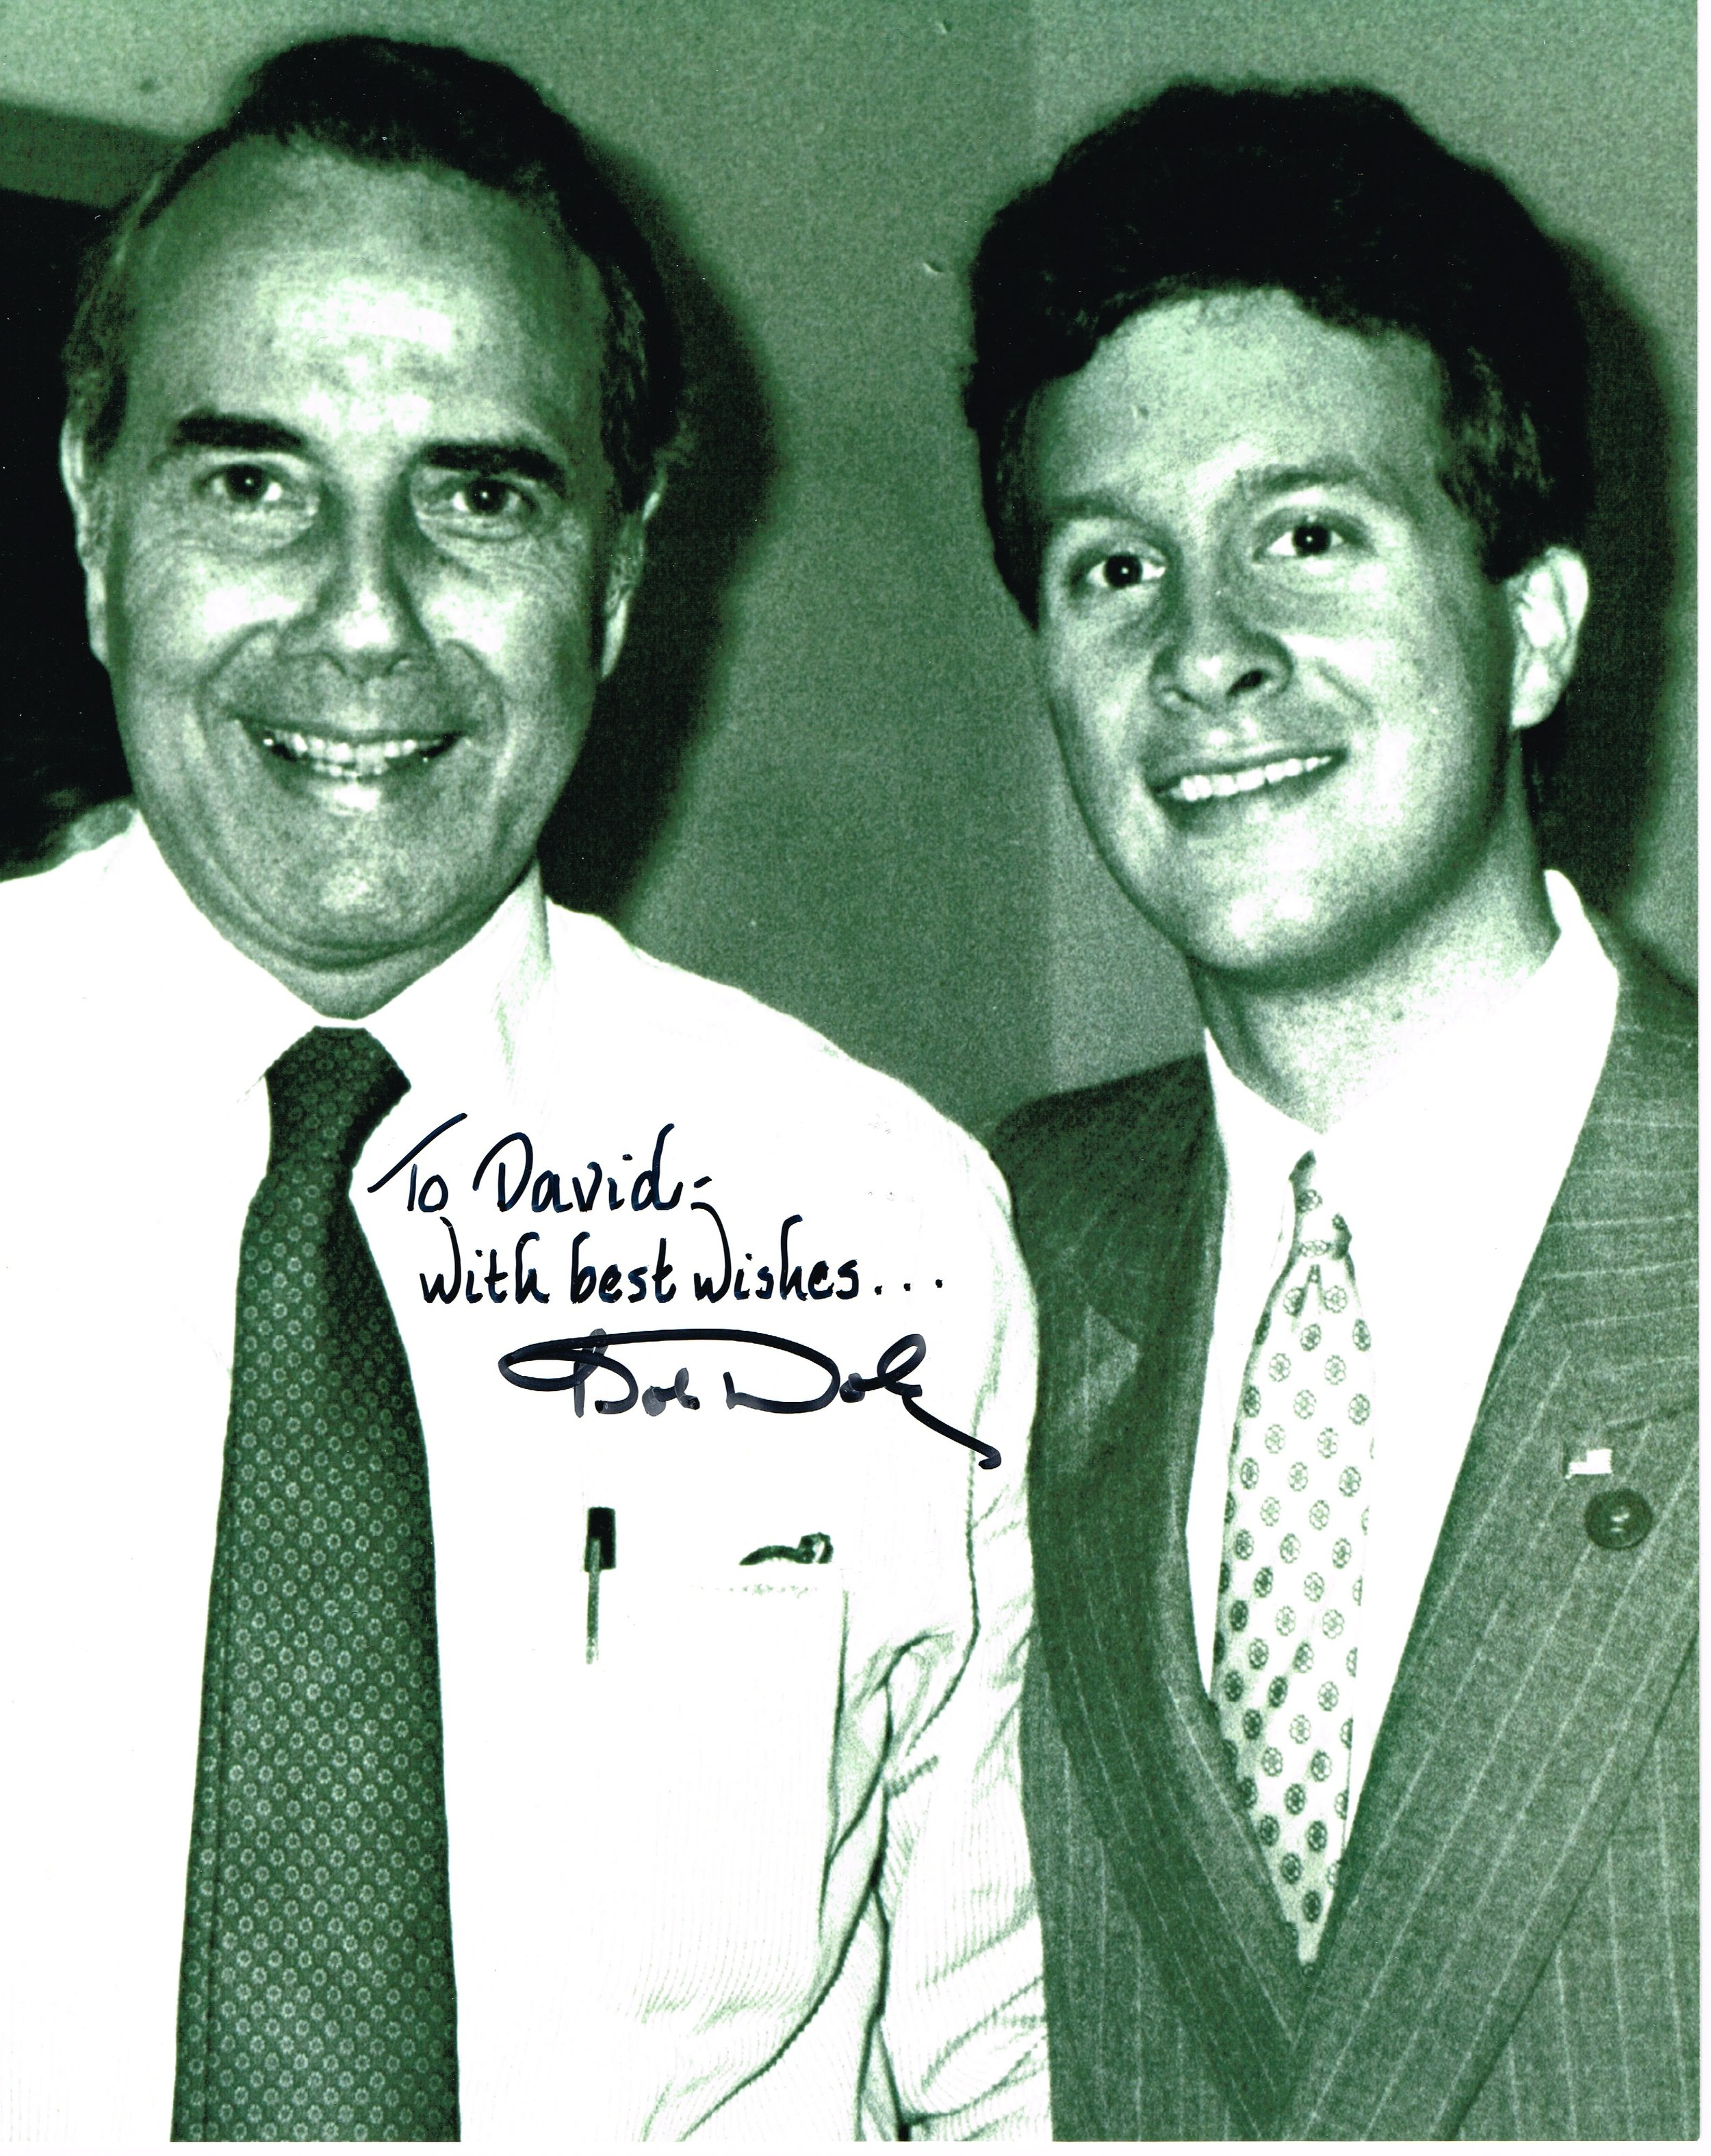 Senator and Presidential candidate Bob Dole and David Eastis